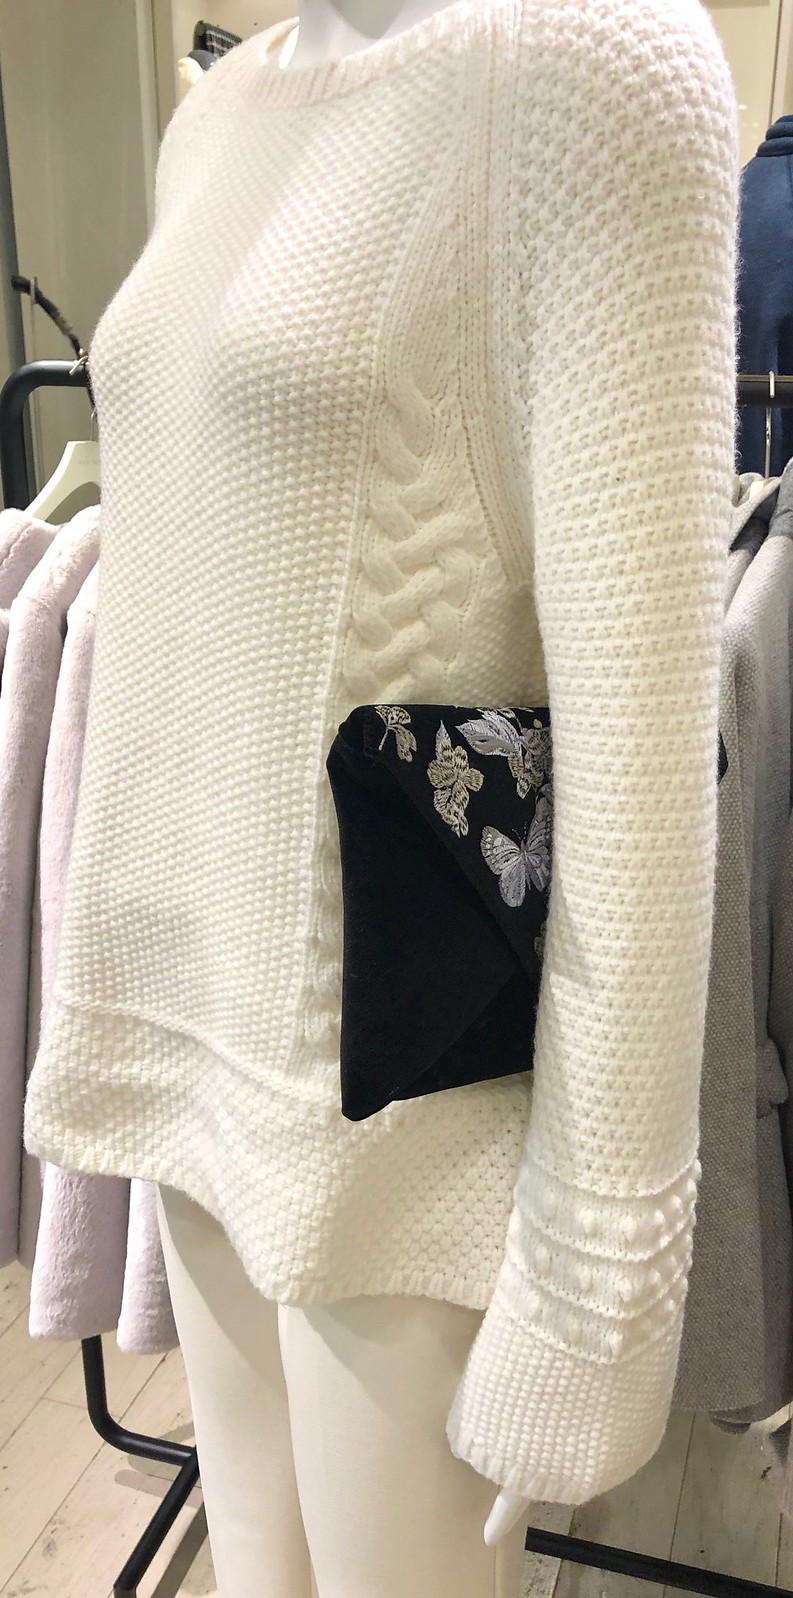 Winter White Outfit Inspiration at Ann Taylor Prudential Center